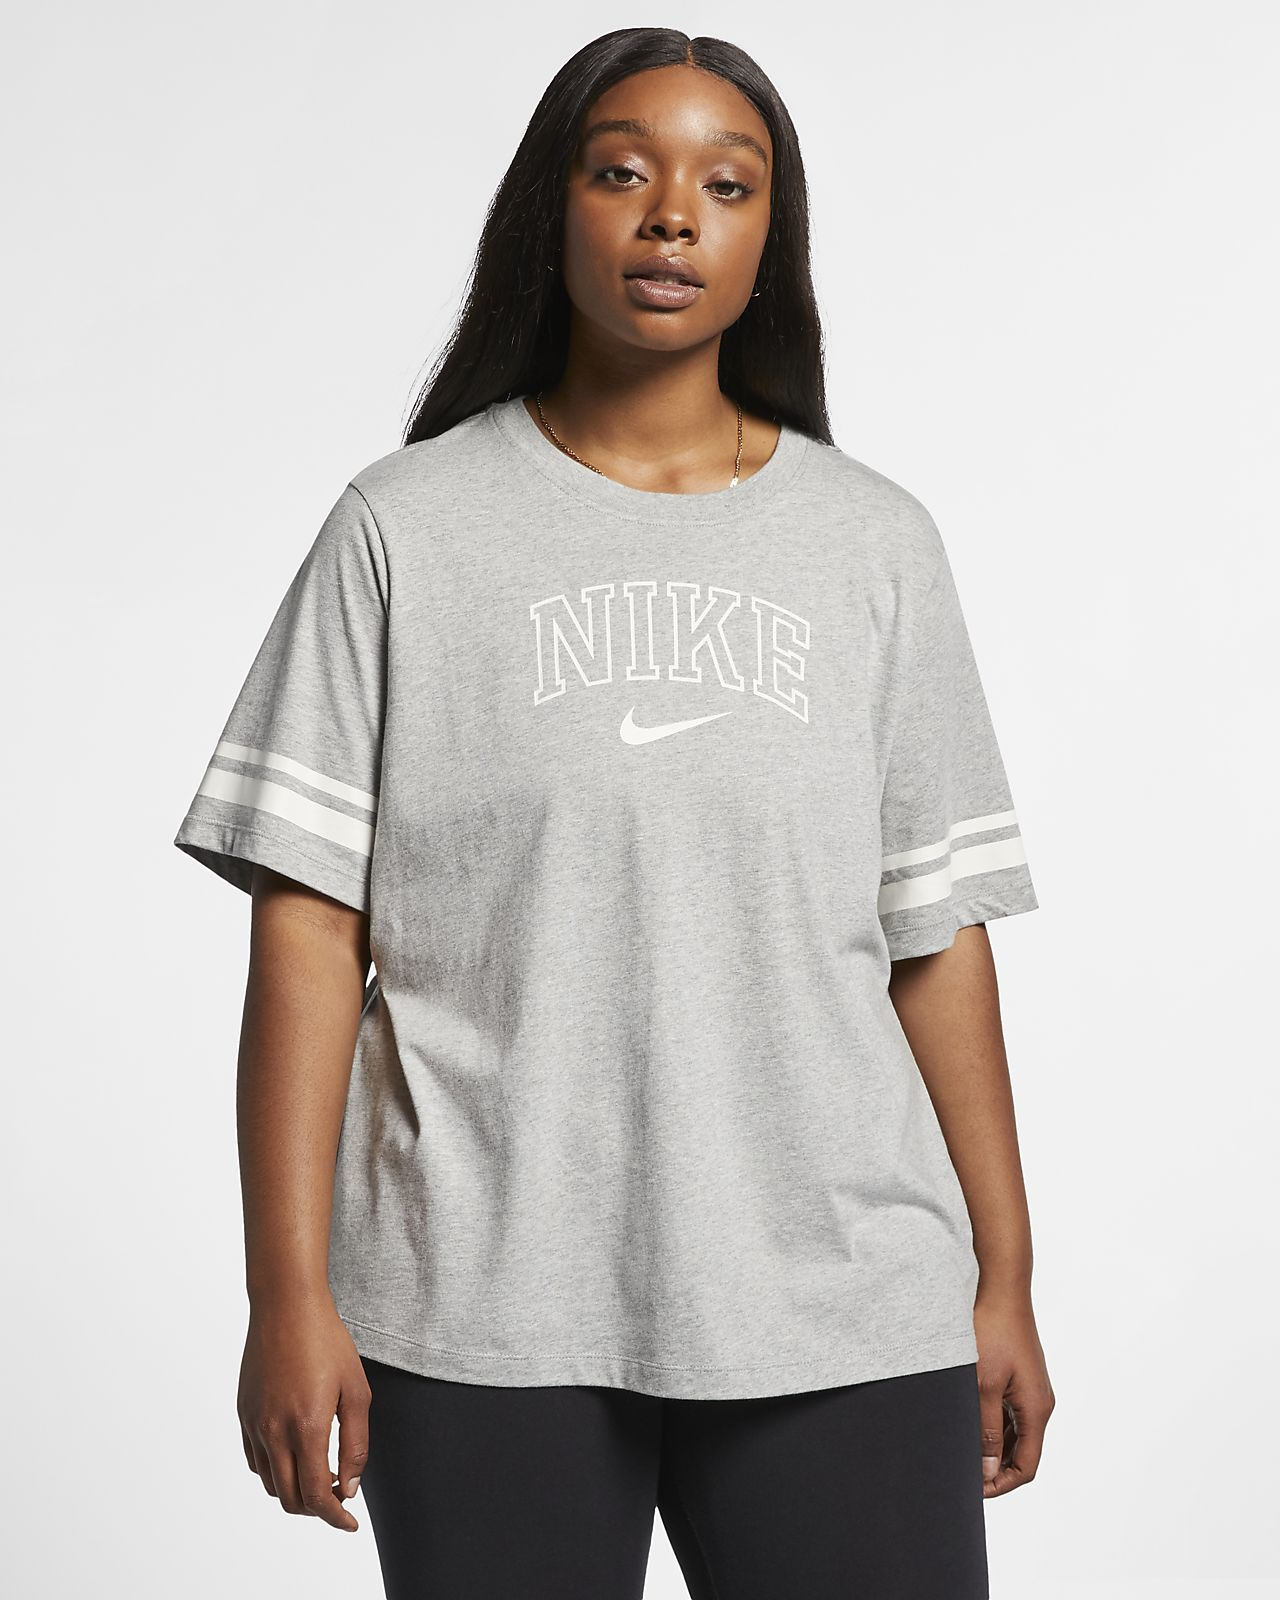 6f18c9635bf Nike Sportswear Women s Short-Sleeve Top (Plus Size). Nike.com